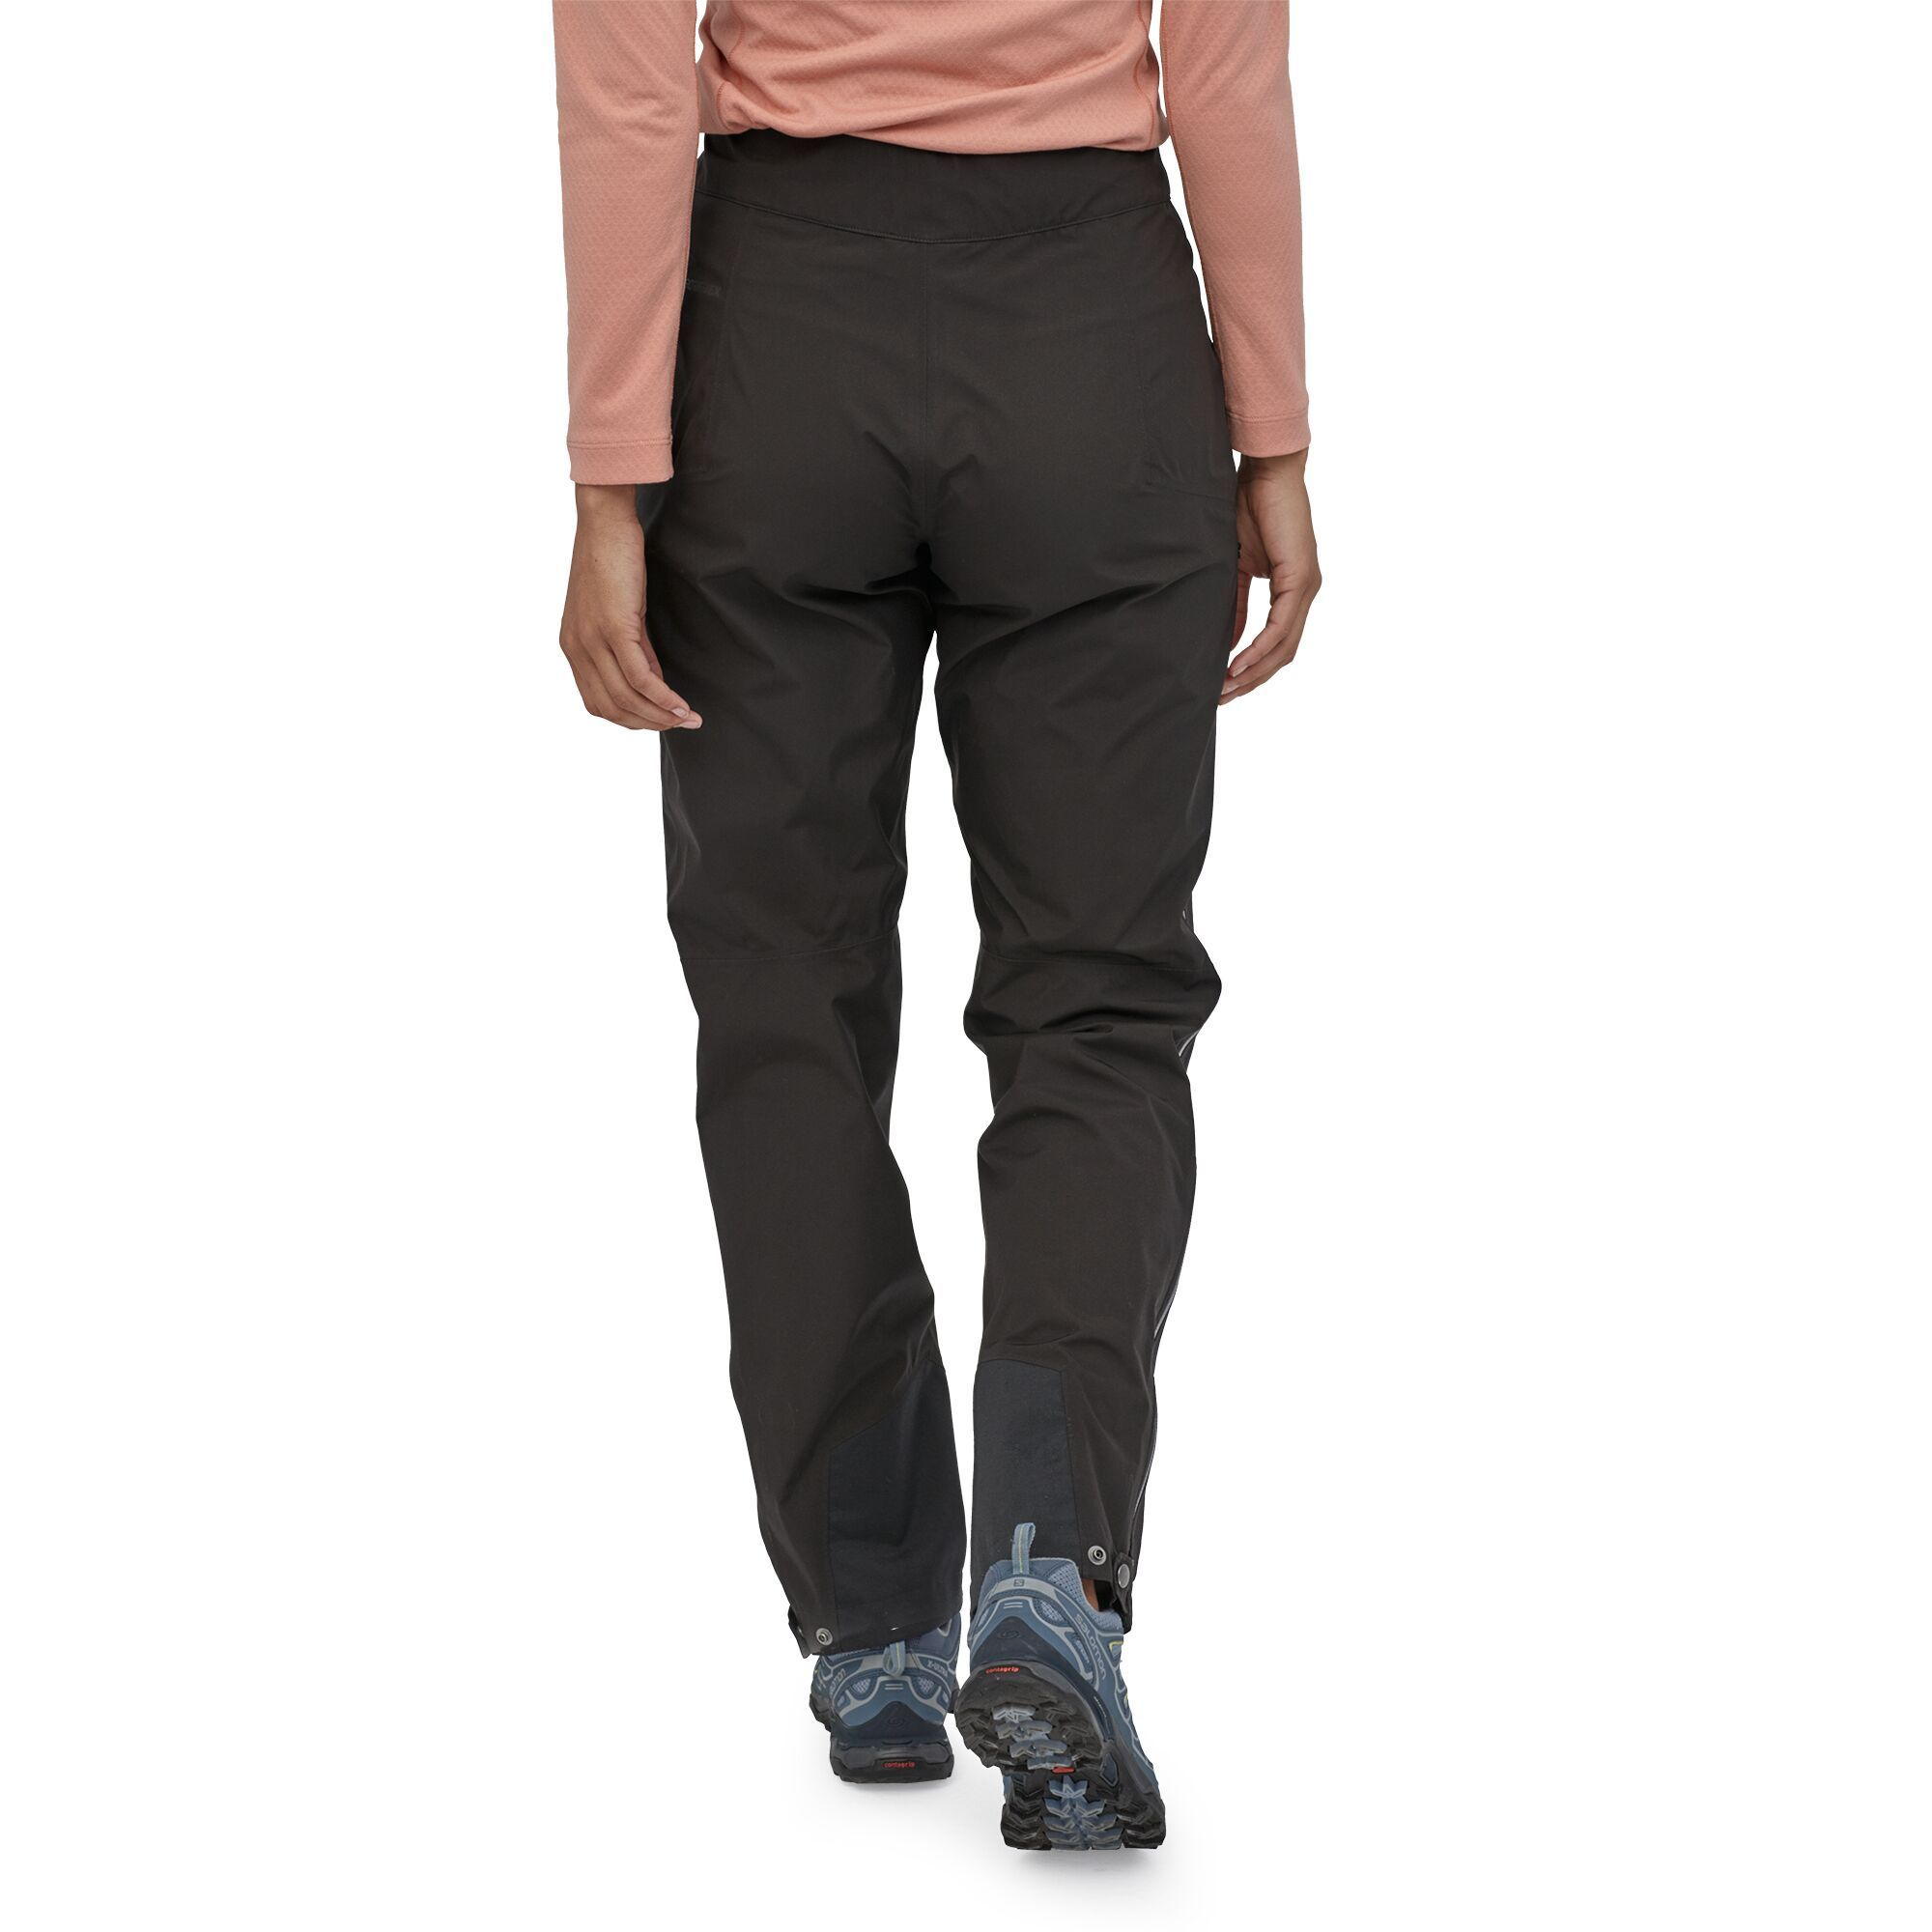 Patagonia - W's Calcite Pants - Gore-Tex - Recycled Polyester - Weekendbee - sustainable sportswear